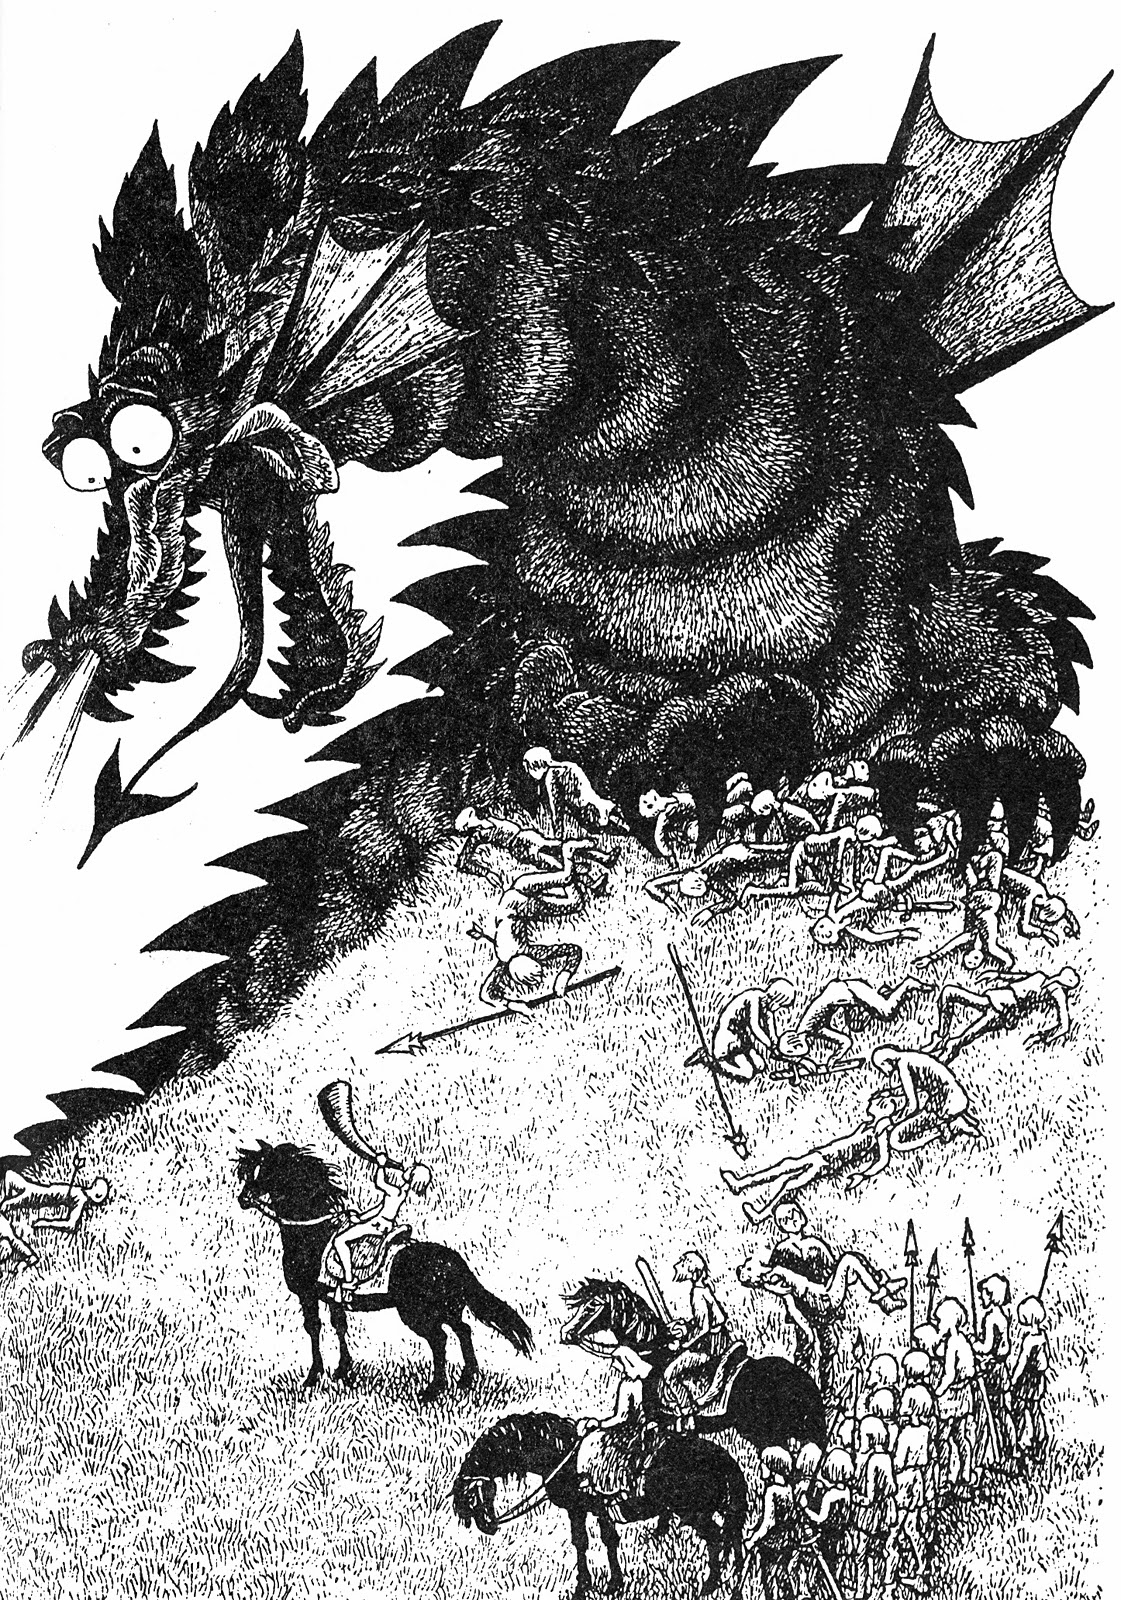 an image of Katla the terrible dragon by Ilon Wikland from the book The Brothers Lionheart